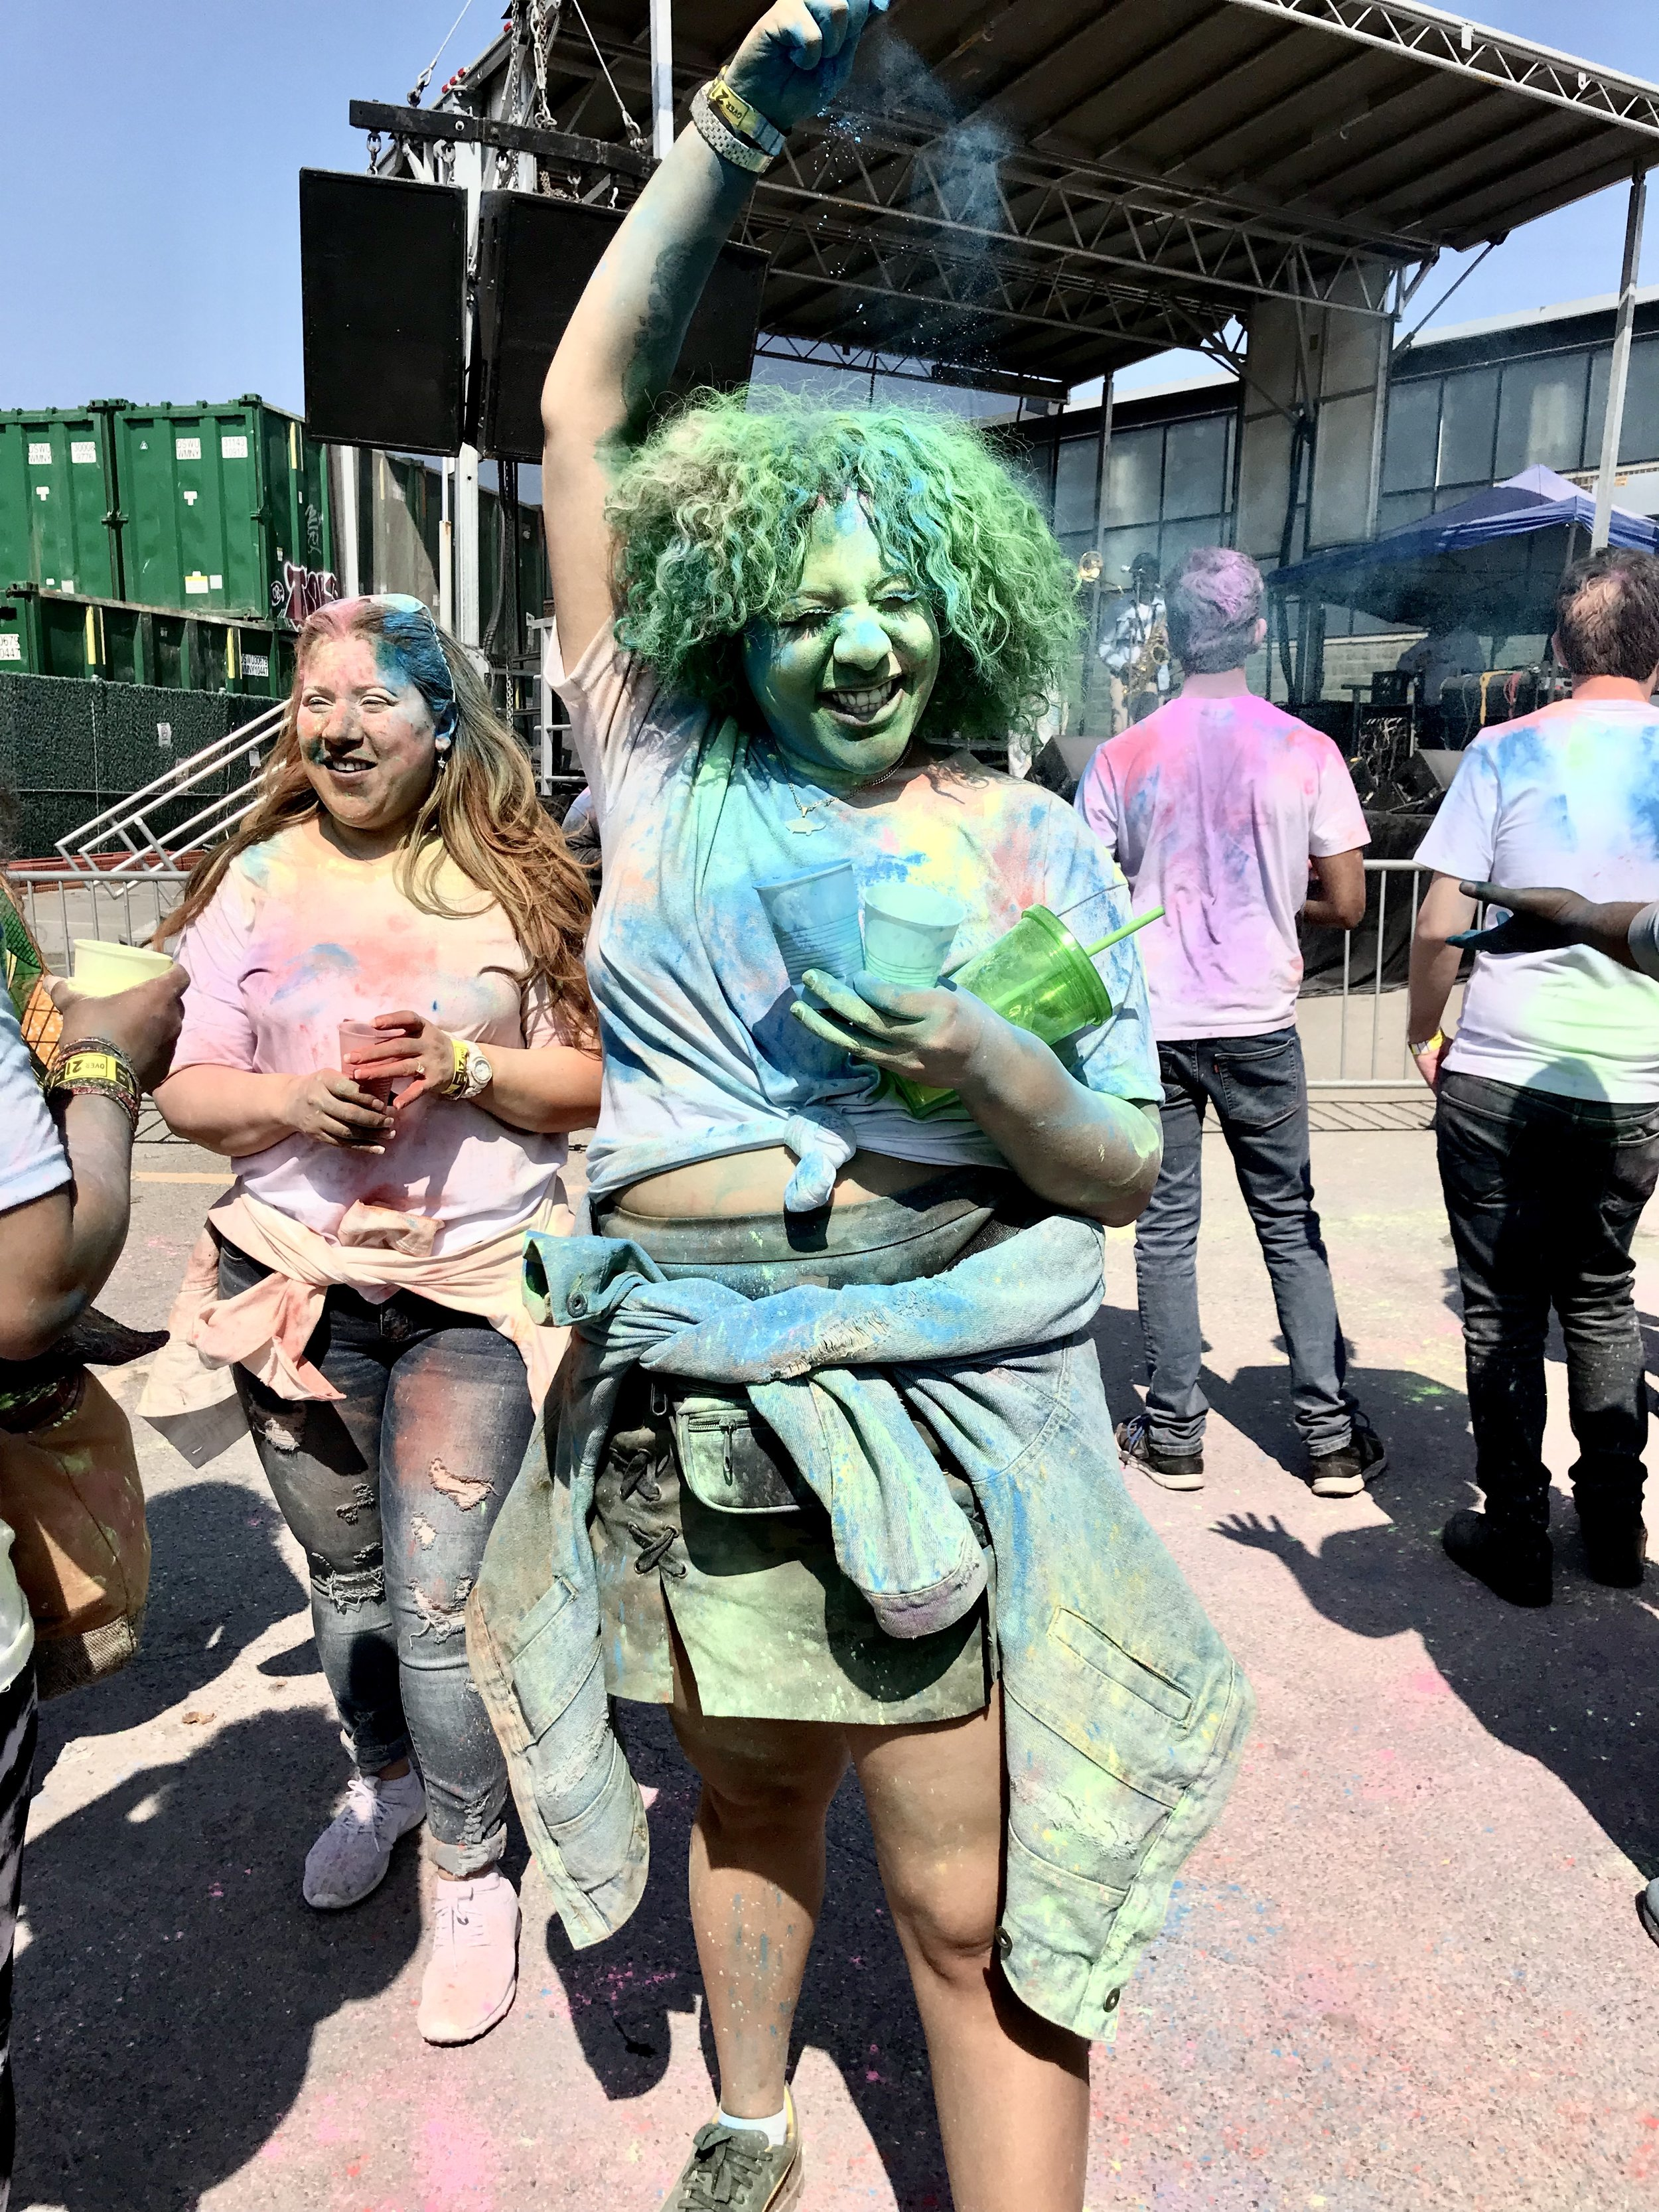 Smiles everywhere;people enjoyed the colorful event by sharing cheerful laughter and smiles.